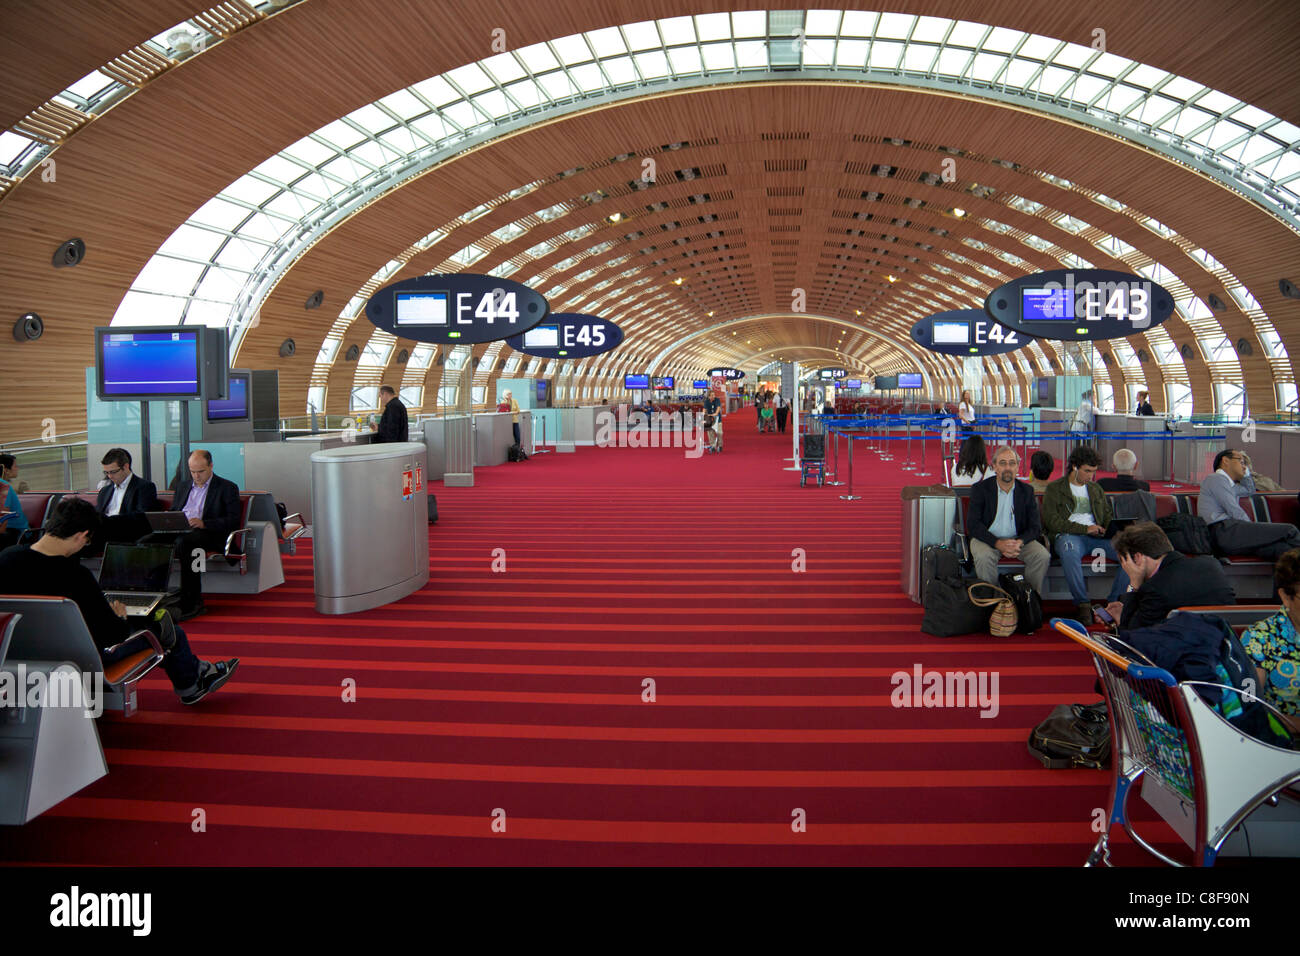 Businessmen and travellers in Terminal 2E, Charles de Gaulle international airport, Roissy, Paris, France - Stock Image